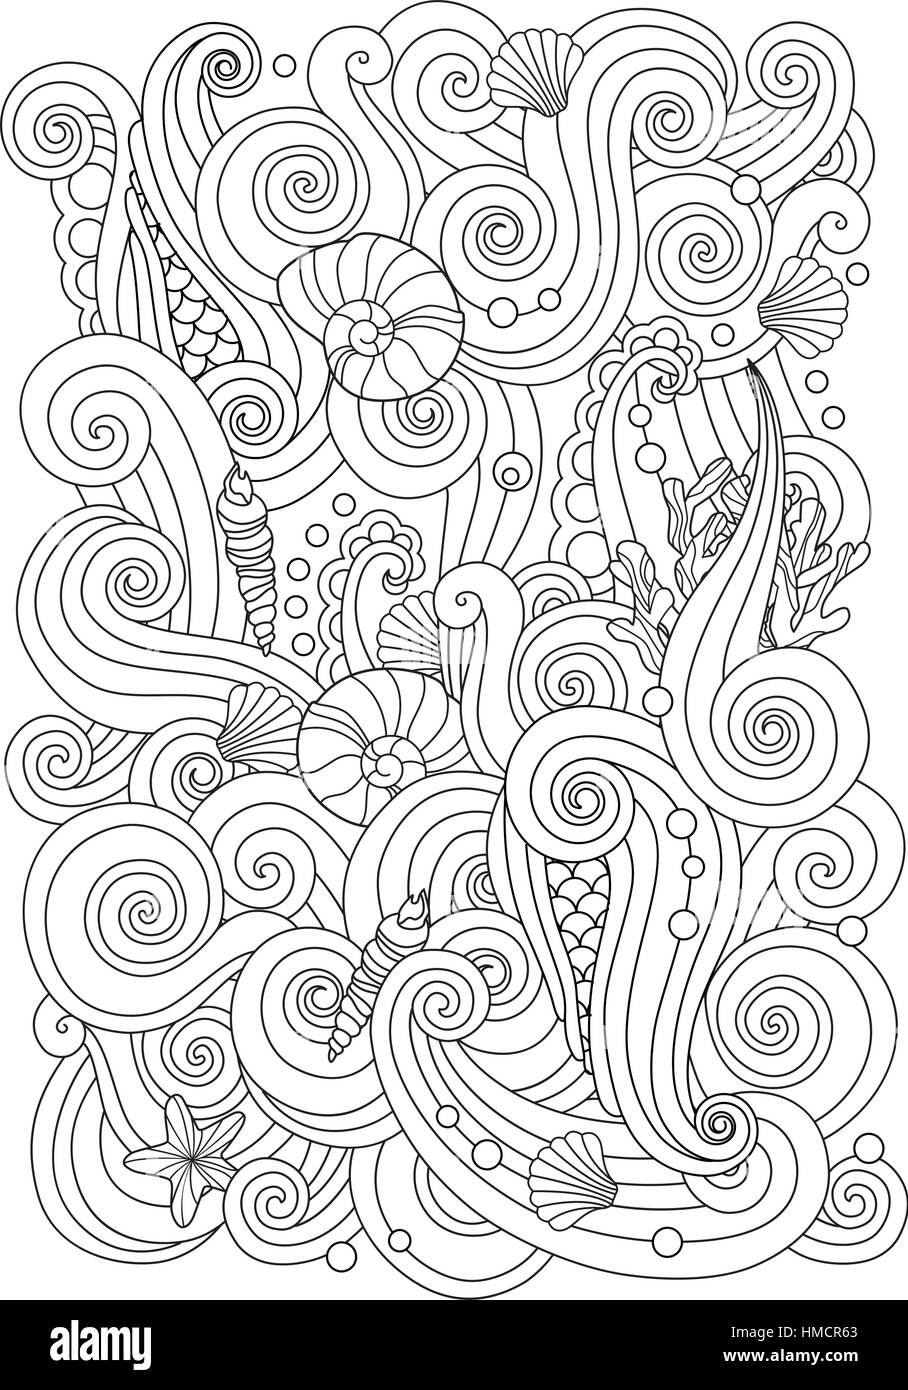 Composition Book Cover Background ~ Coloring page with abstract sea background waves shells corals